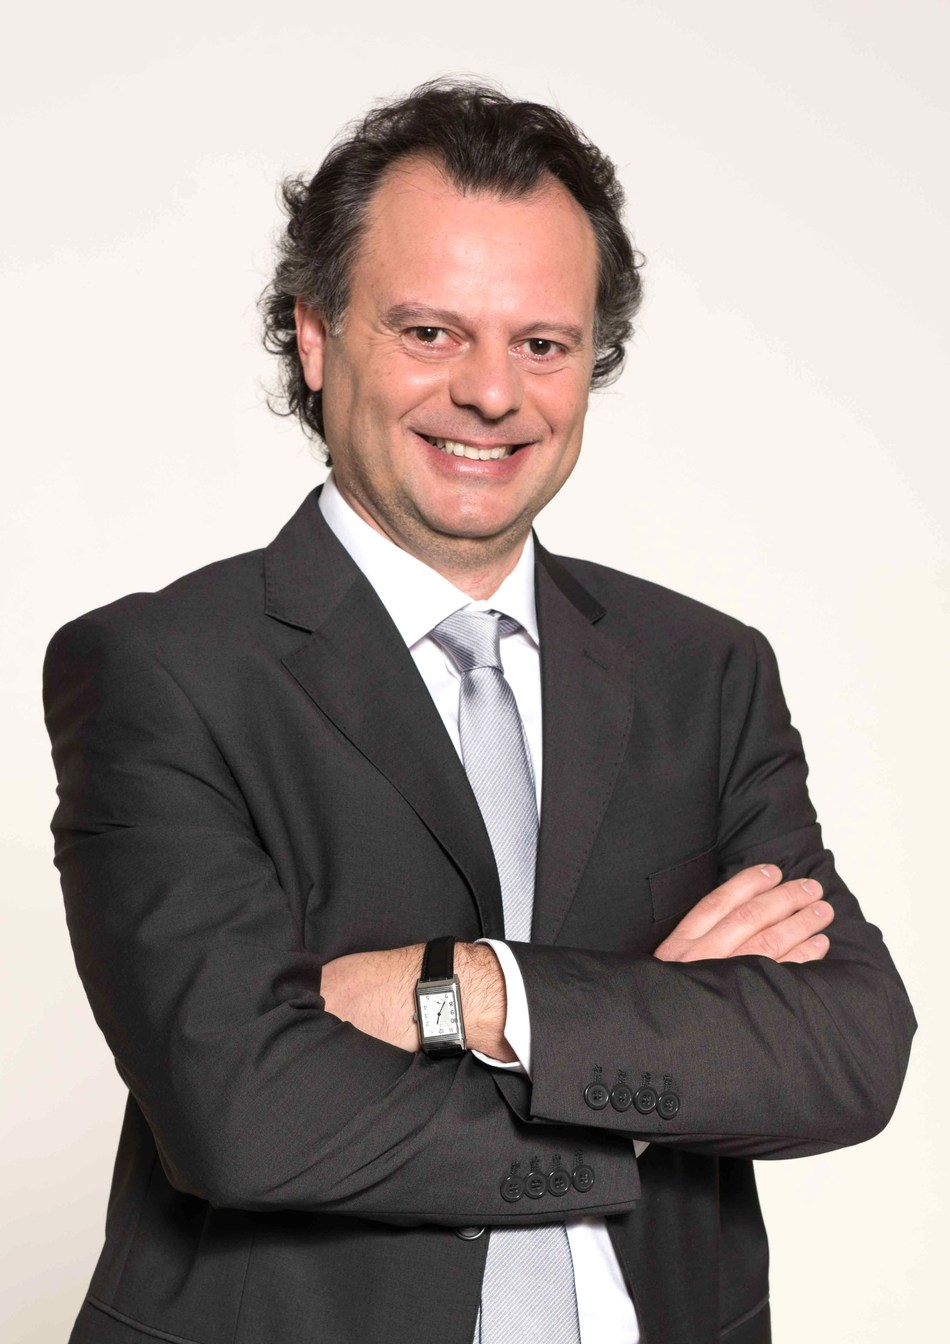 Augusto Mitidieri, CEO of Sintetica S.A. (PRNewsfoto/Business Worldwide Magazine)